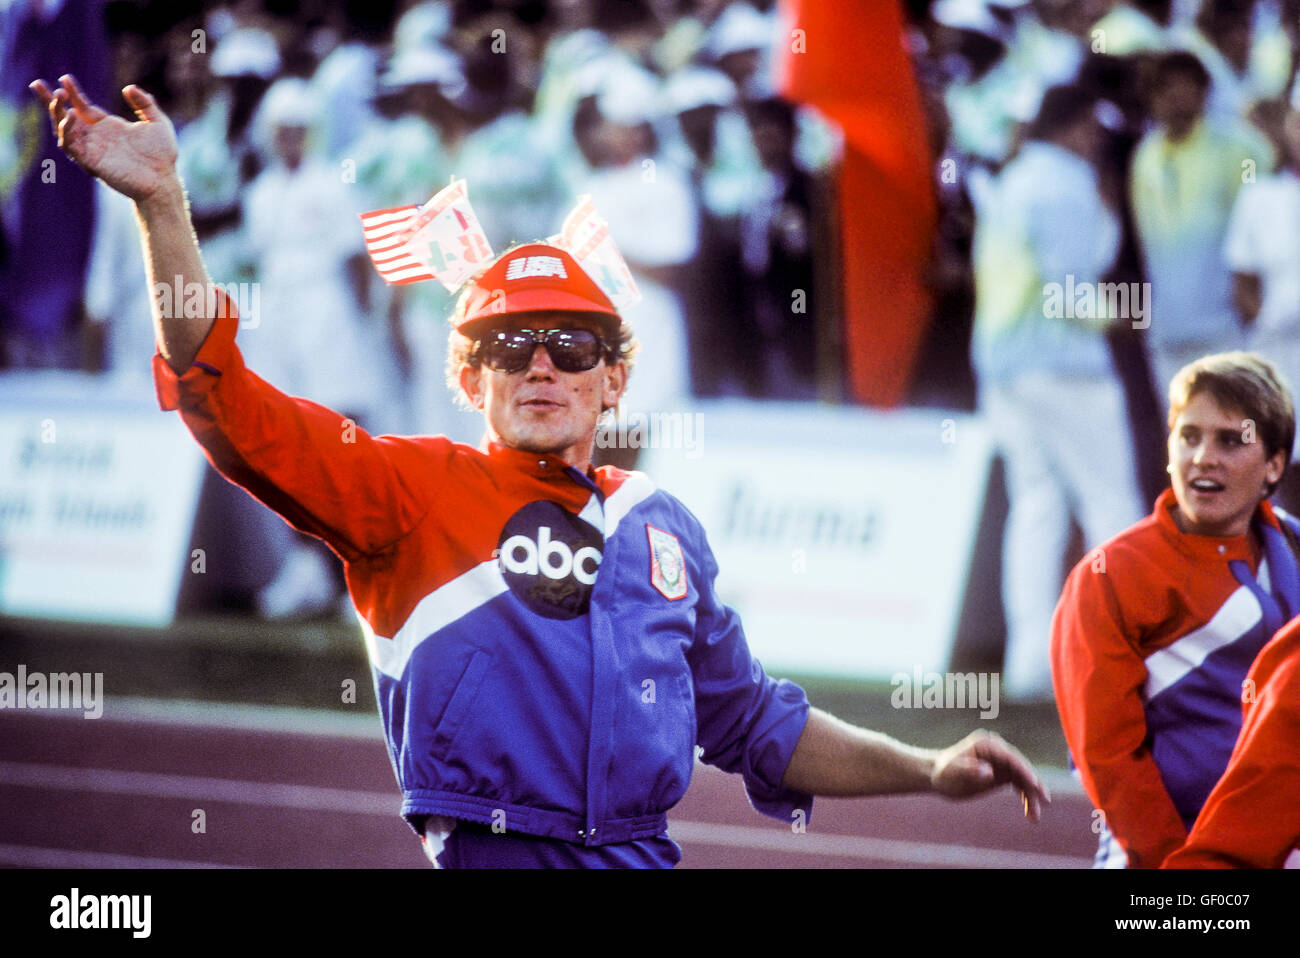 US athletes enter stadium during opening ceremonies at 1984 Olympic Games in Los Angeles. - Stock Image